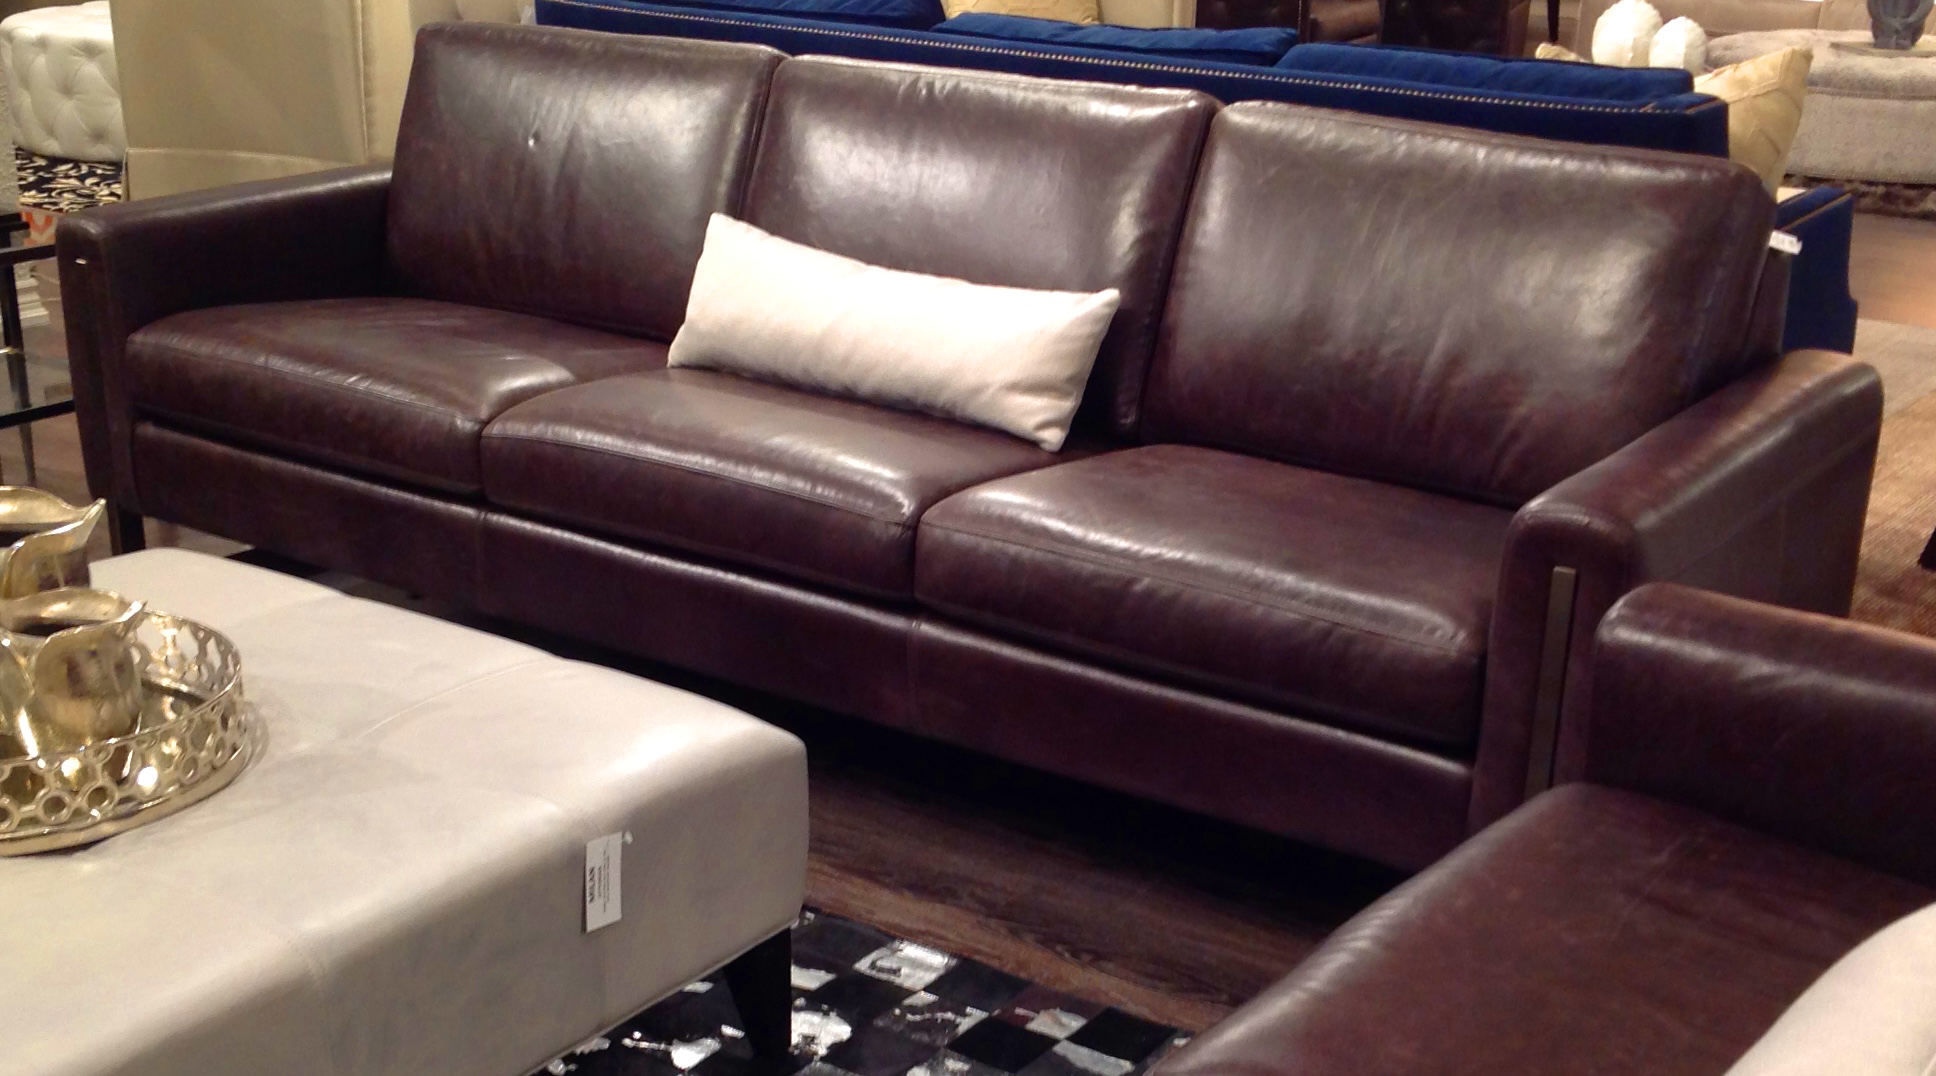 Polanco Furniture Store Ottawa Interior Decor Solutions Canadian Furniture Show 2015 Recap